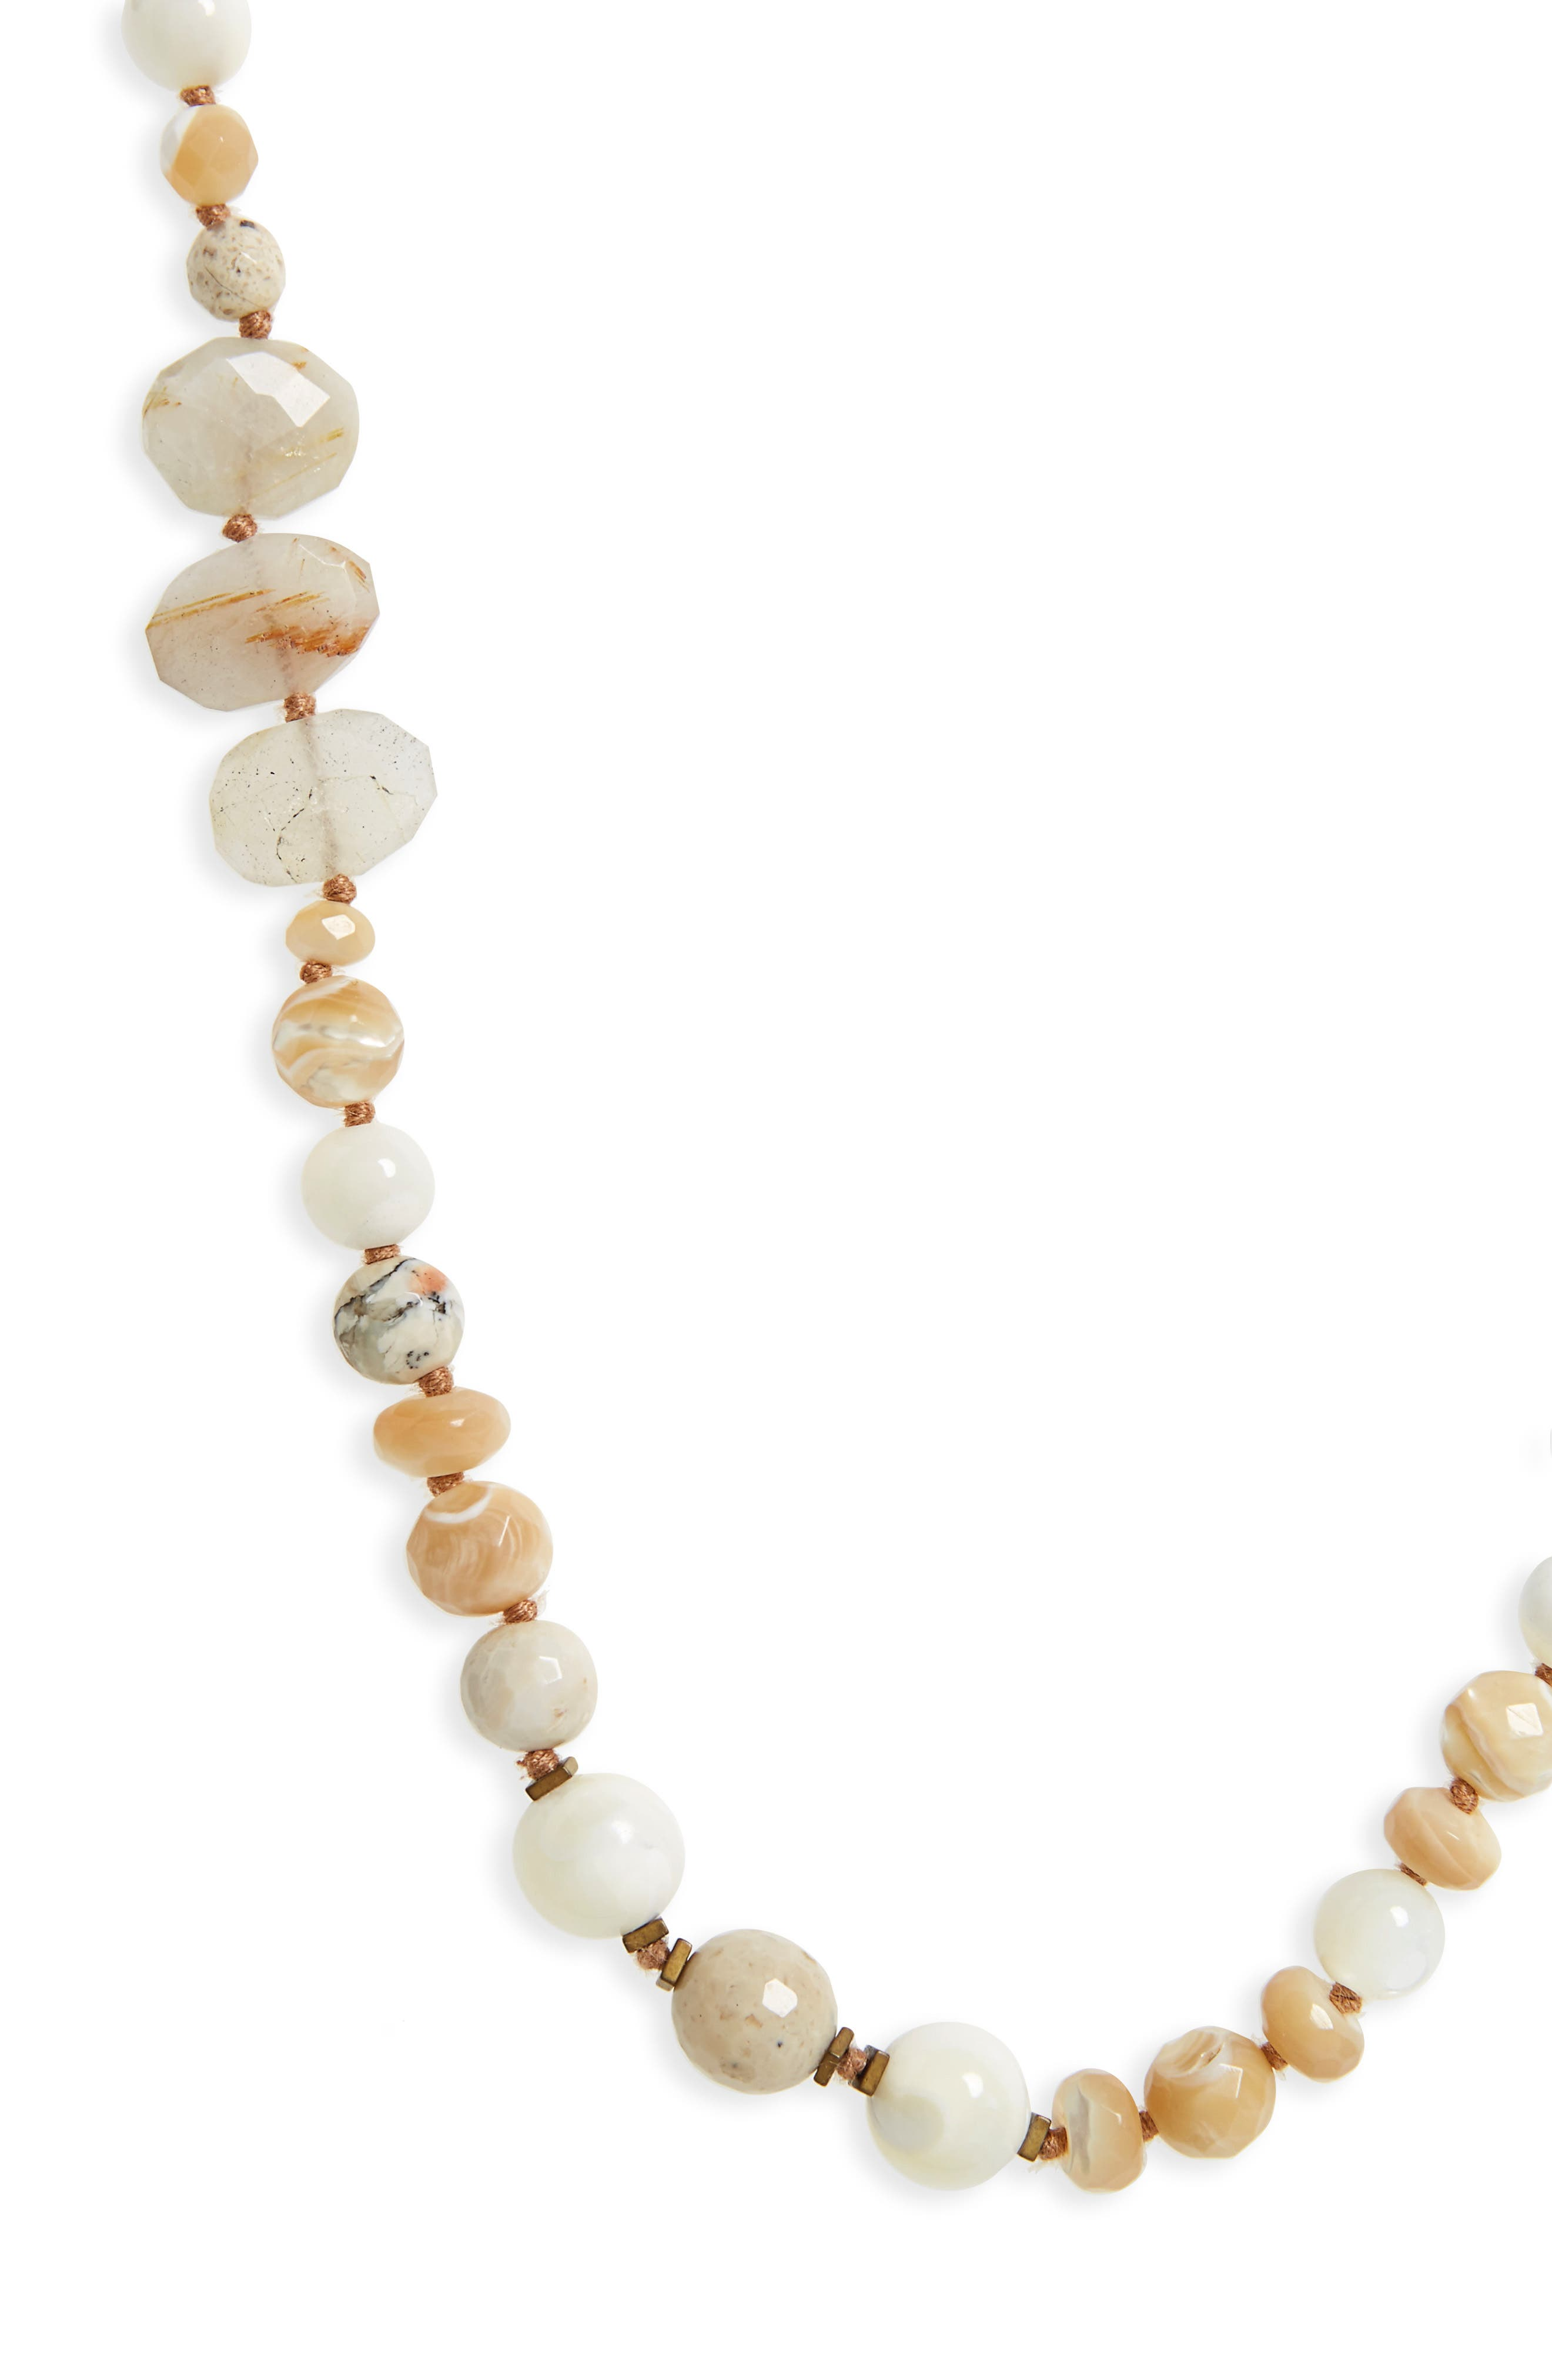 Semiprecious Stone Strand Necklace,                             Alternate thumbnail 2, color,                             100